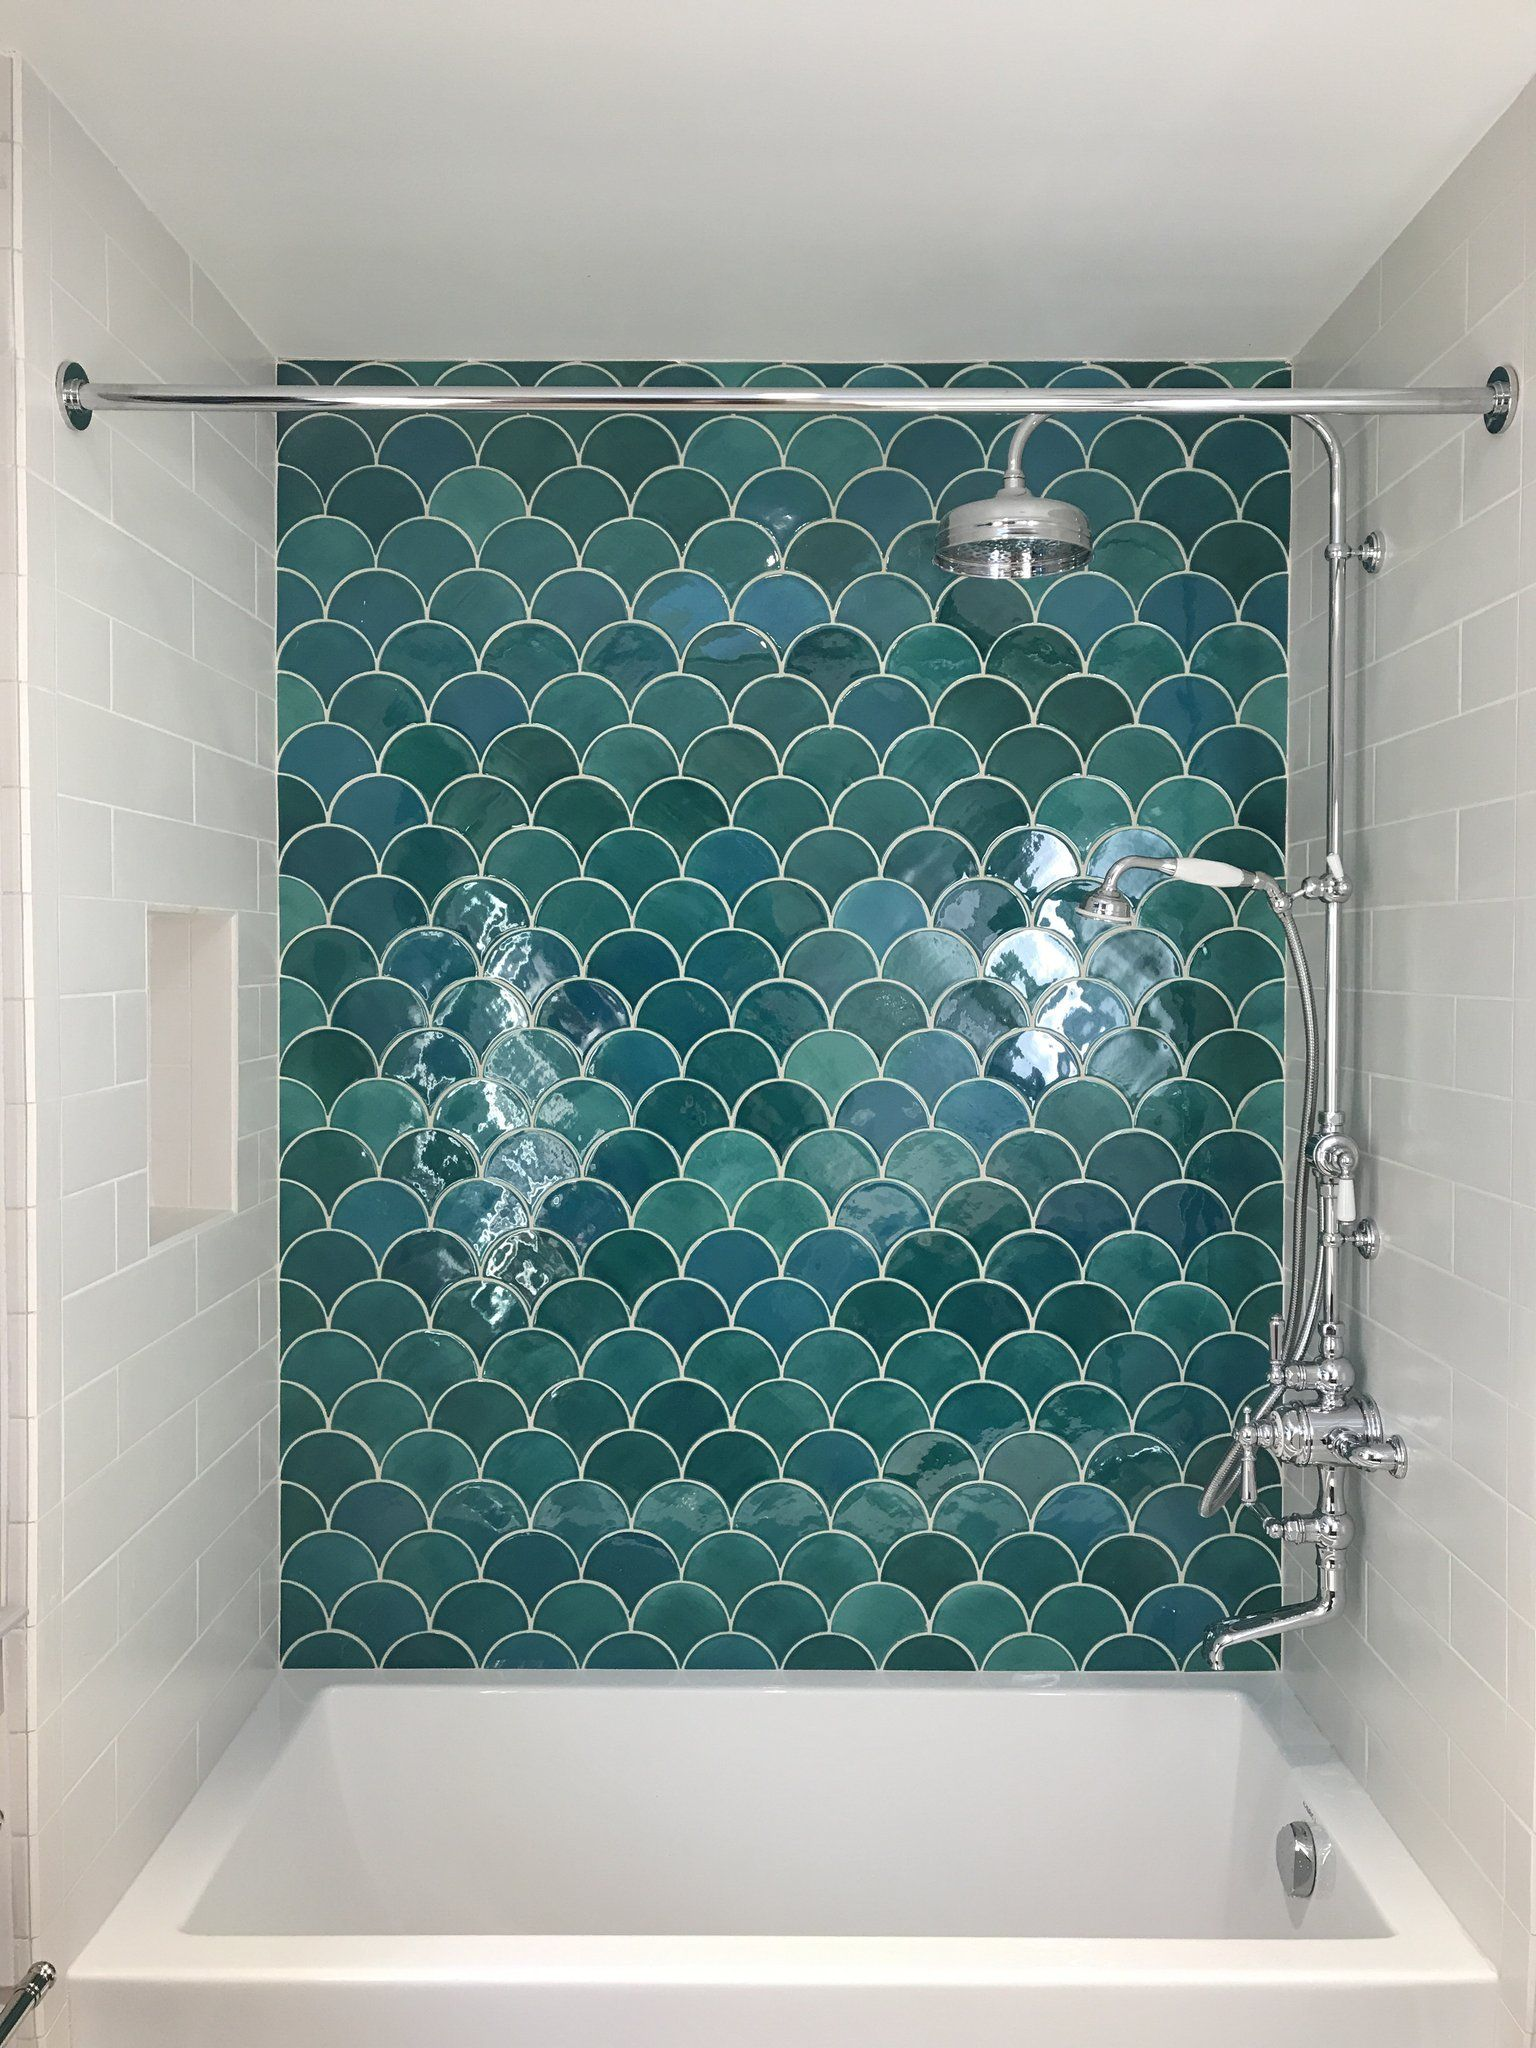 Moroccan Fish Scale Tiles 11 Ways To Incorporate Your Favorite Mermaid Shape Green Tile Bathroom Bathroom Interior Design Bathroom Interior